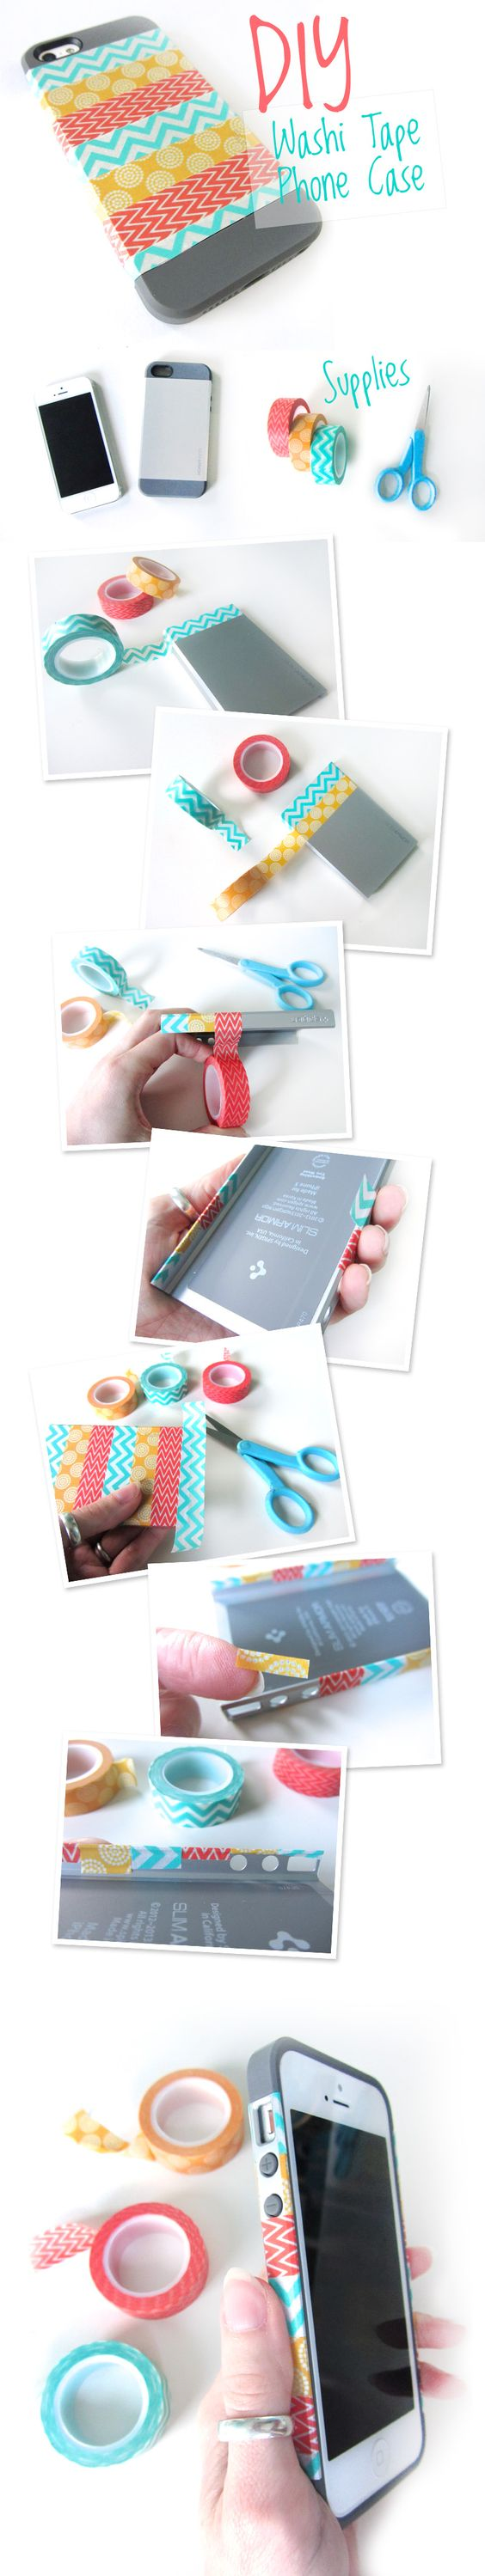 washi-tape-diy-case